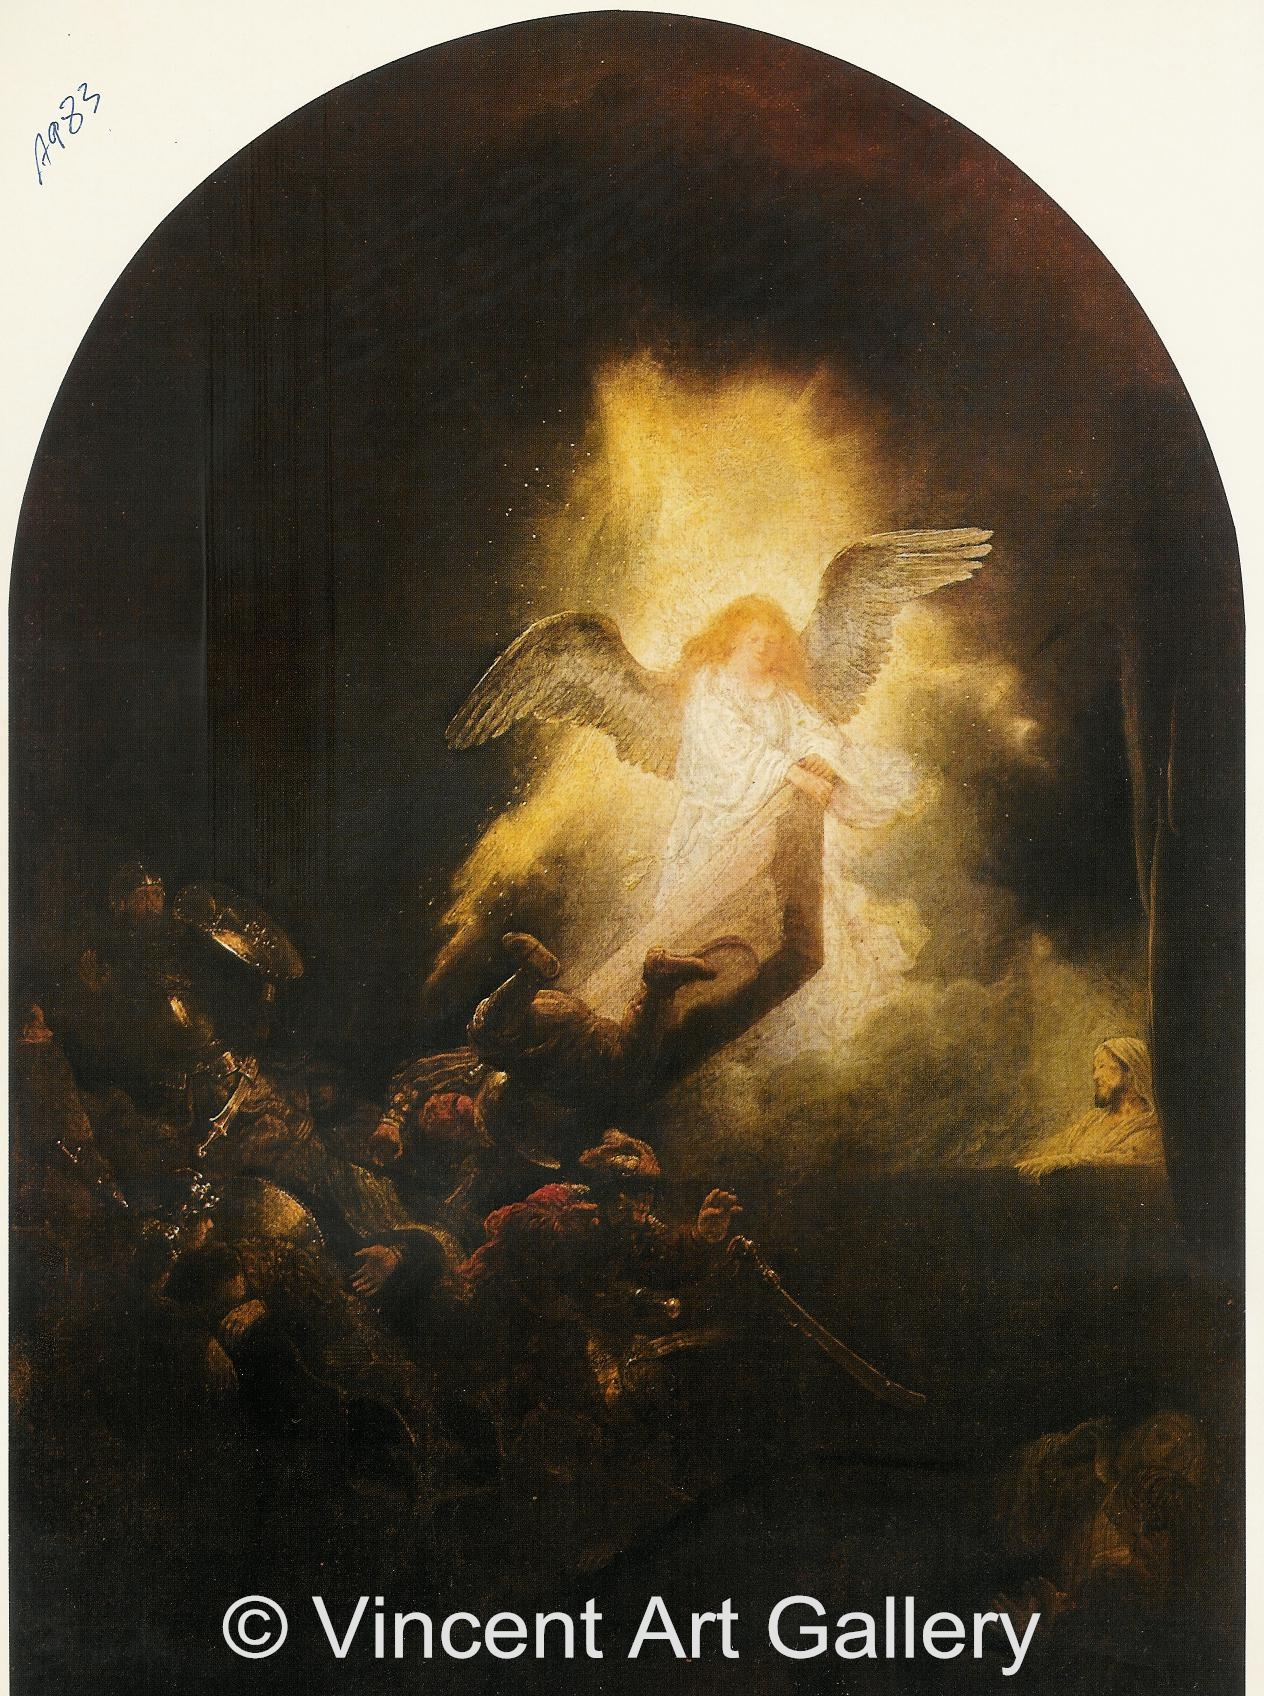 A983, REMBRANDT, The Assention of Jesus Christ